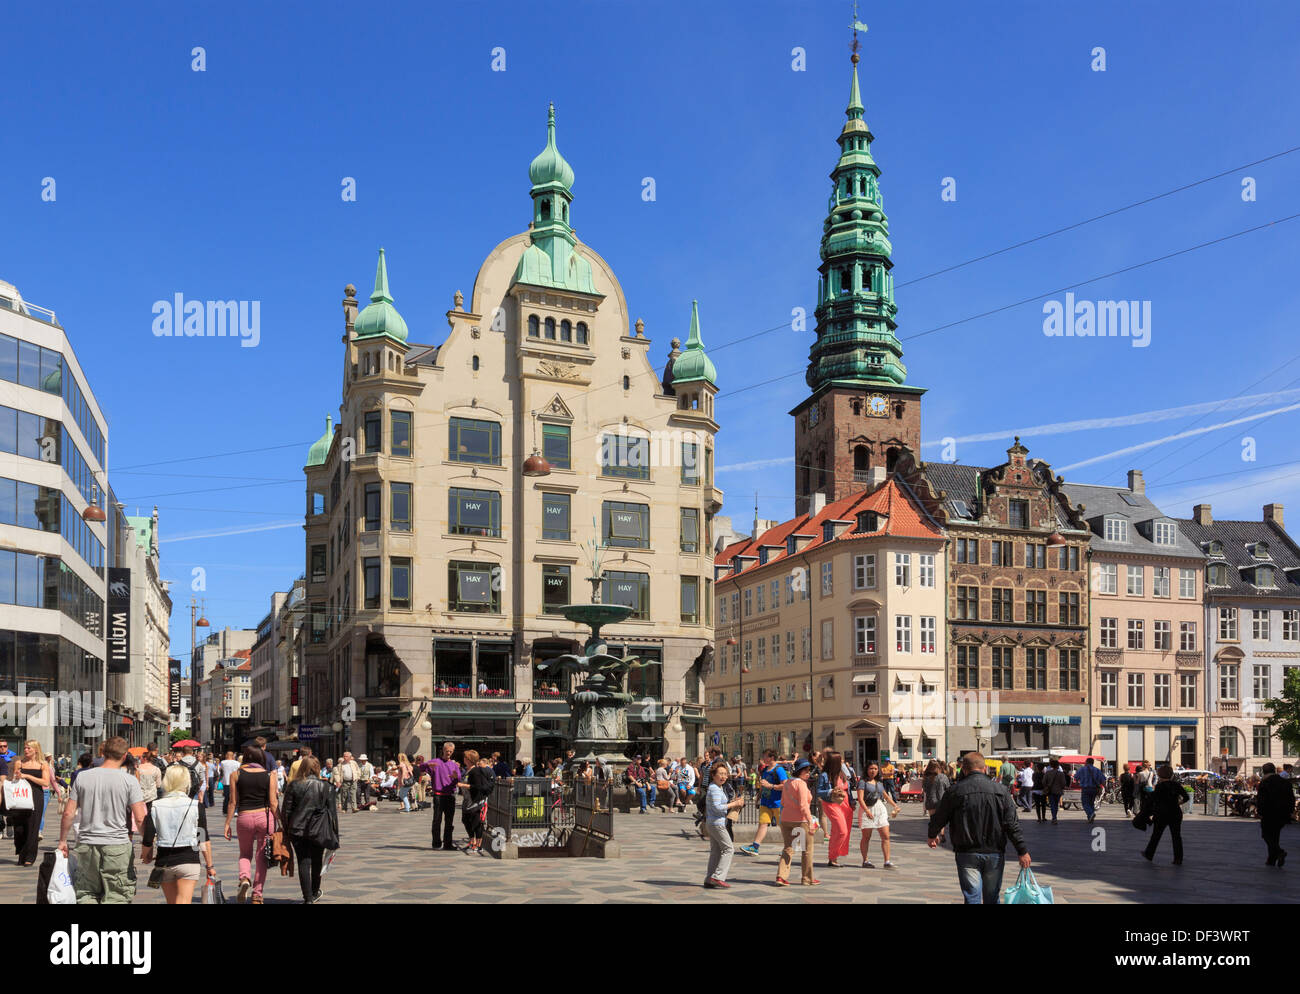 Amagertorv Square with old city buildings around the Stork Fountain and St Nikolaj Church tower Amager Torv, Copenhagen Denmark - Stock Image